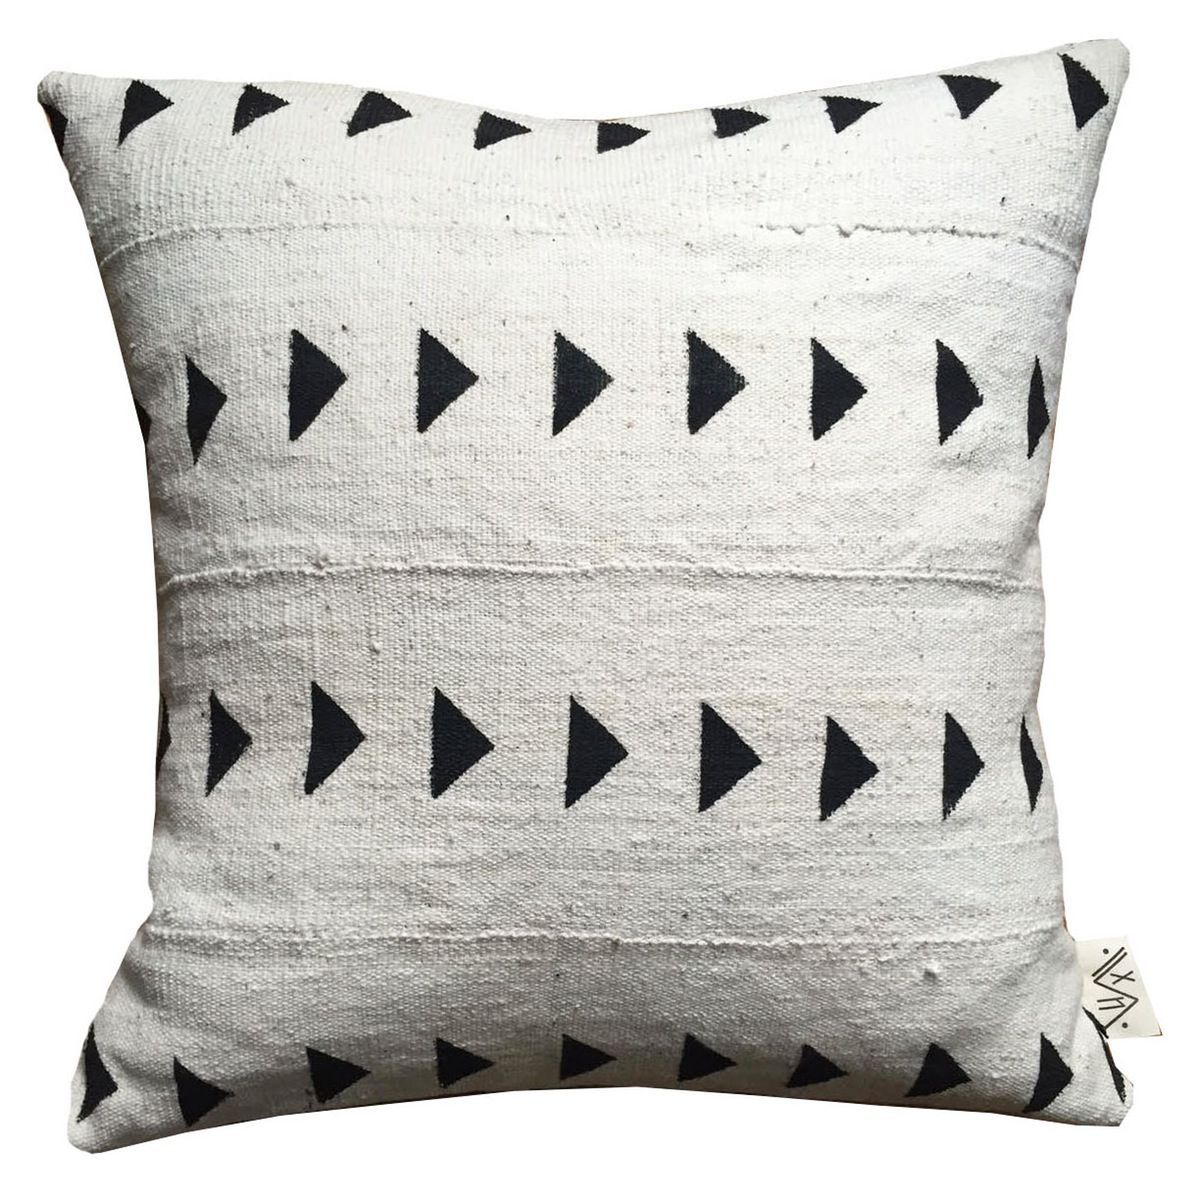 Meroë, Sudan, after which this pillow is named, is home to the greatest number of pyramids in the world. Style in several different directions for...